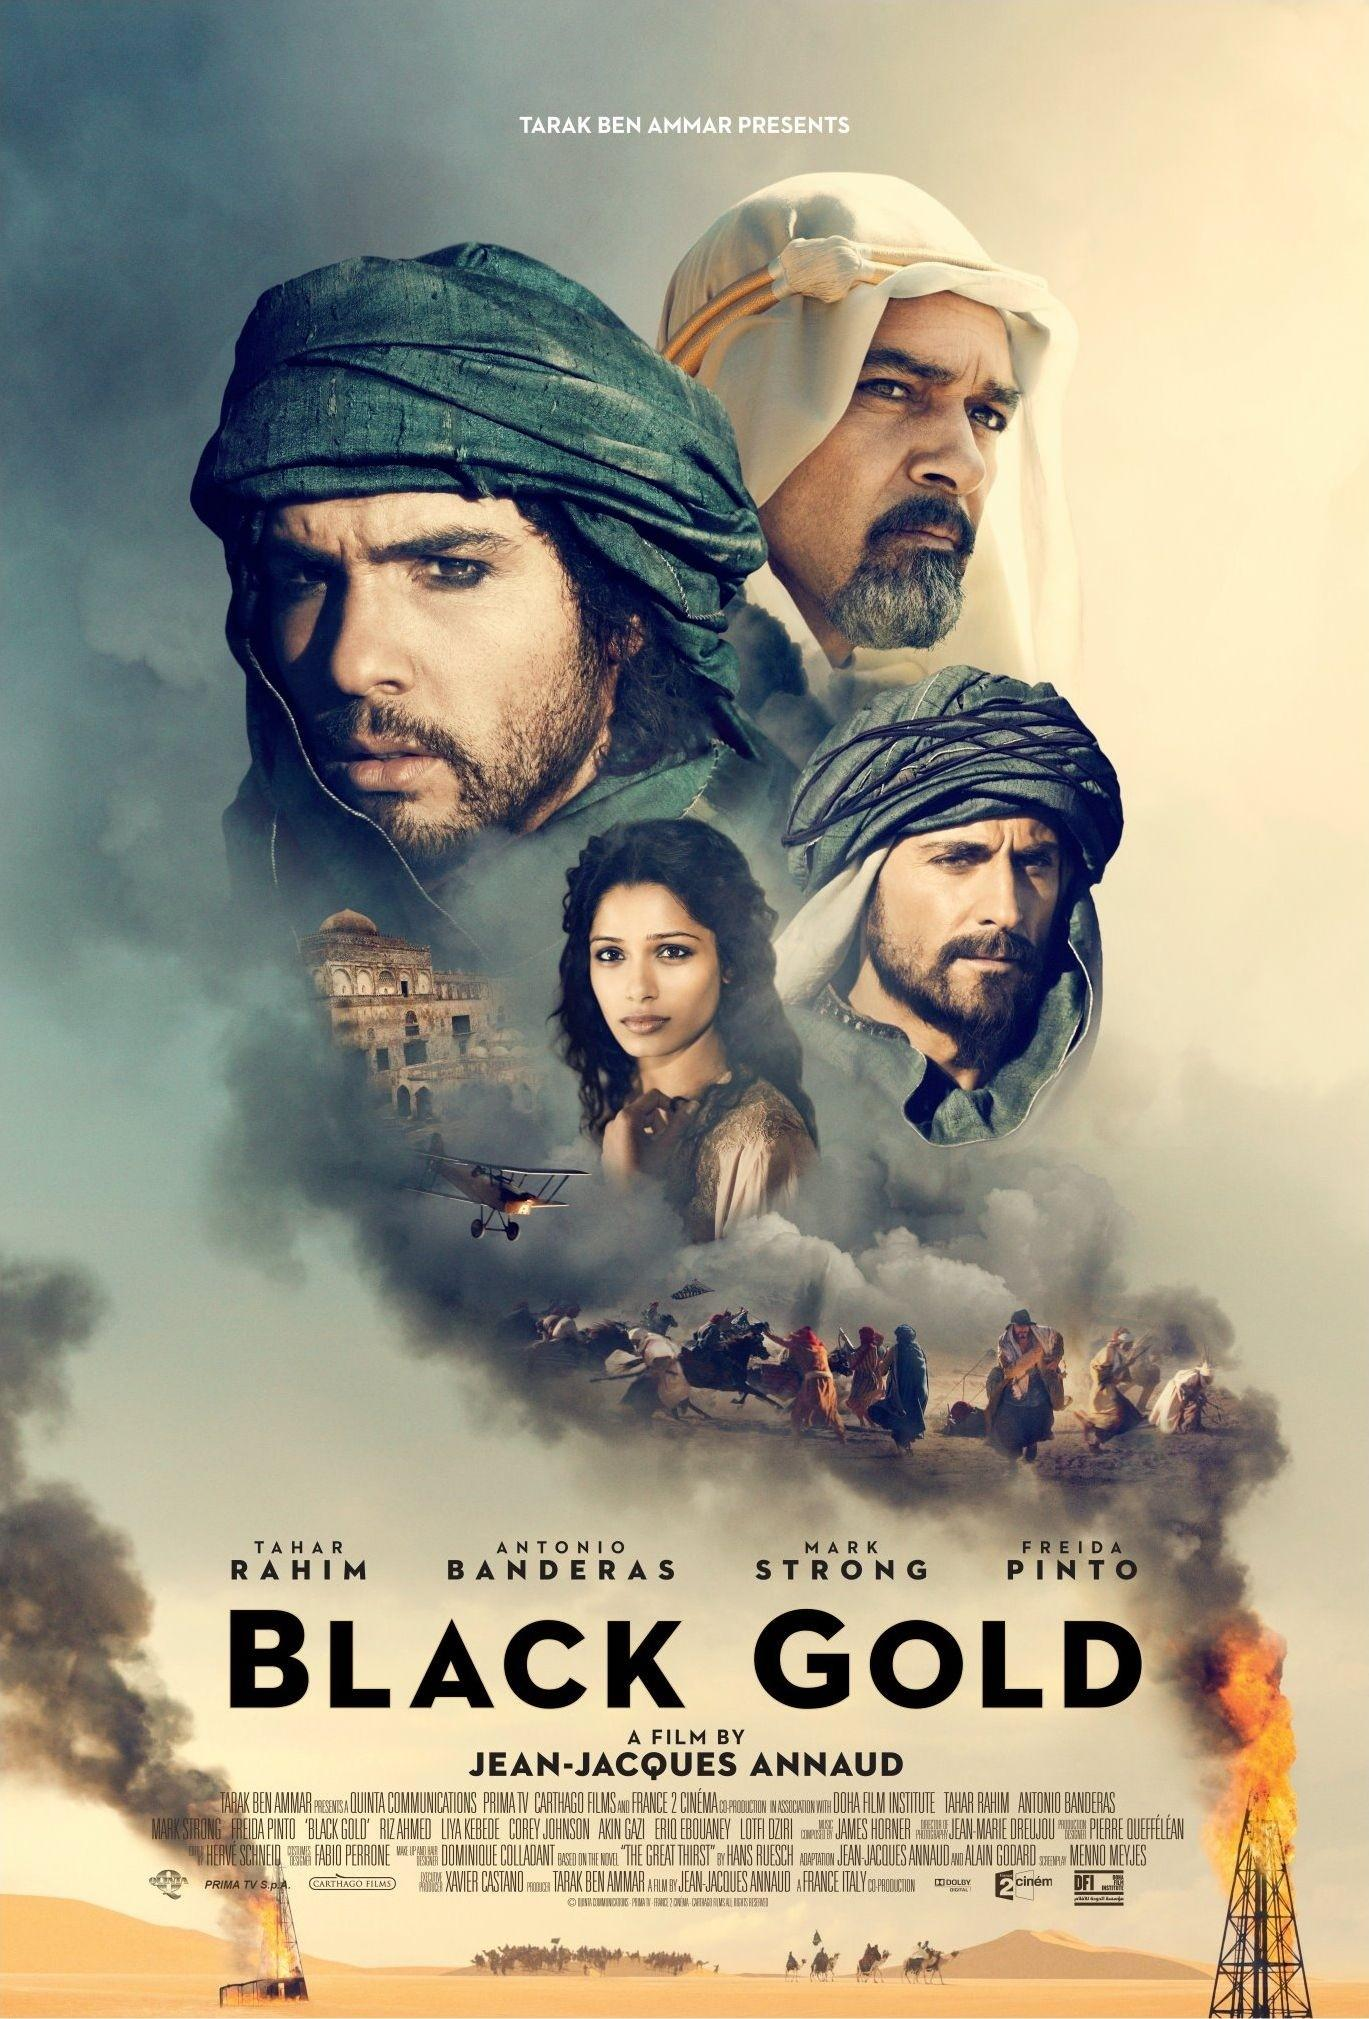 black-gold-movie-poster-01.jpg (1369×2019)